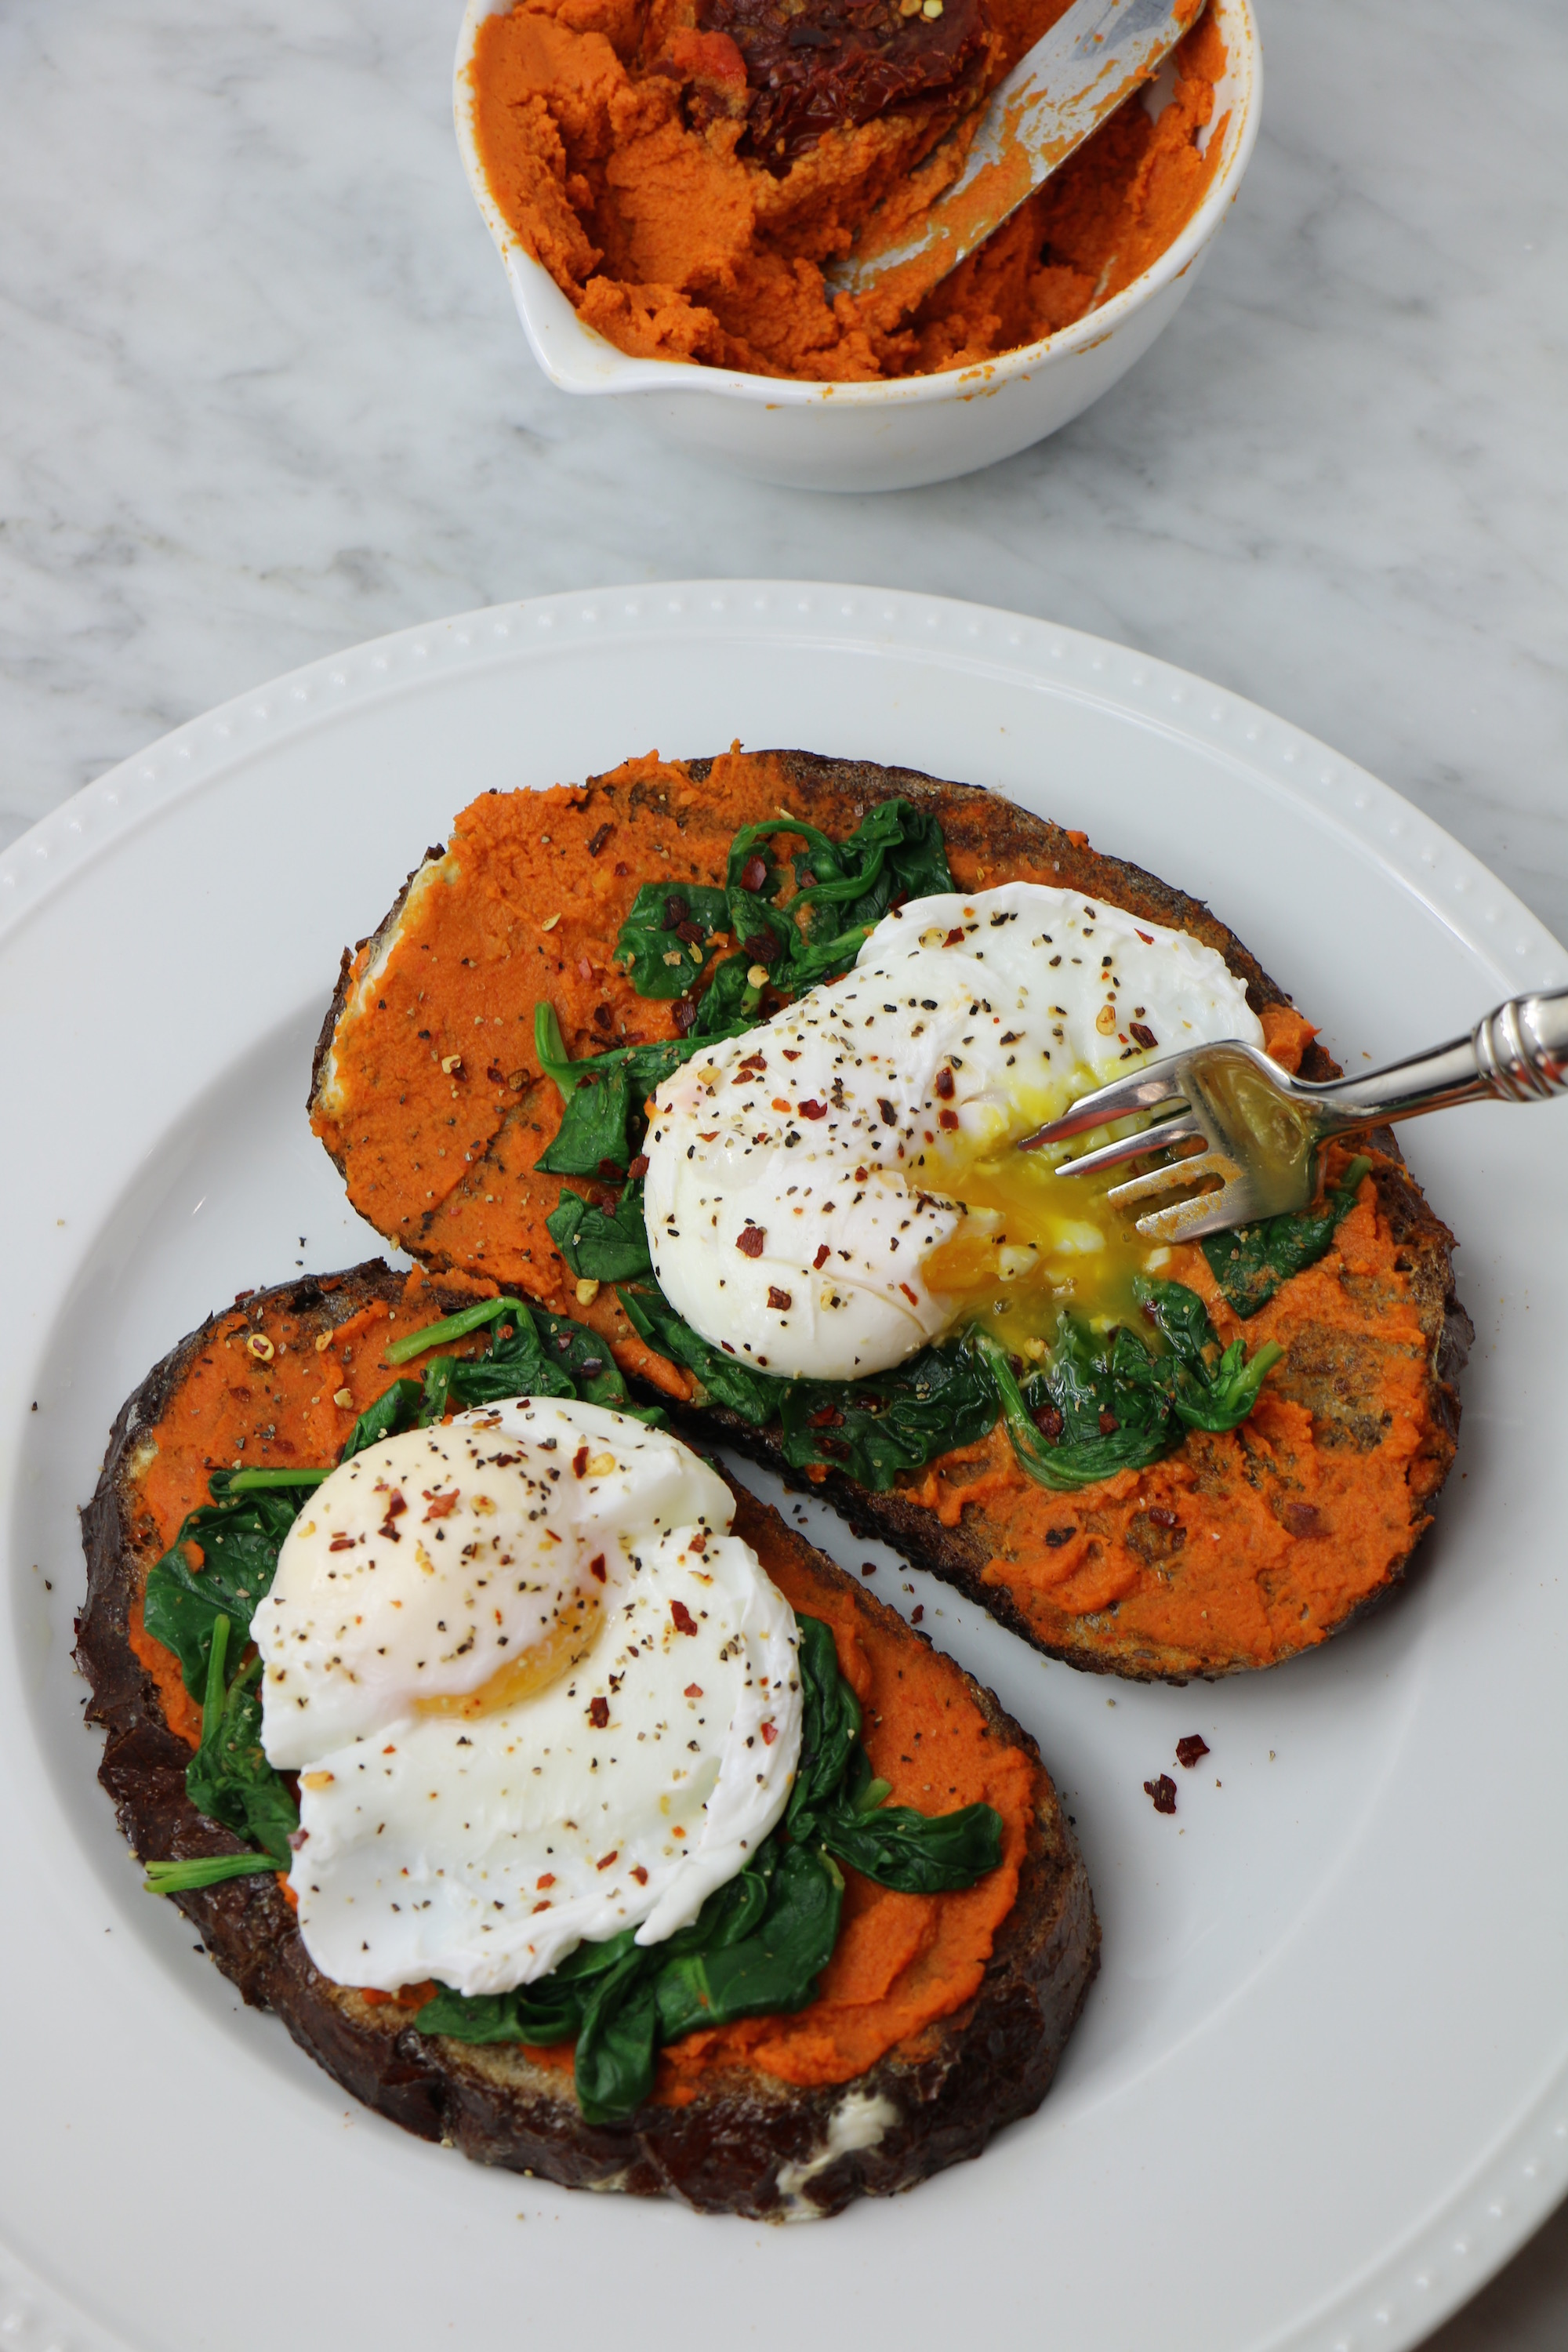 Savory French Toast with Sun-Dried Tomato Hummus, Spinach, and Poached Eggs